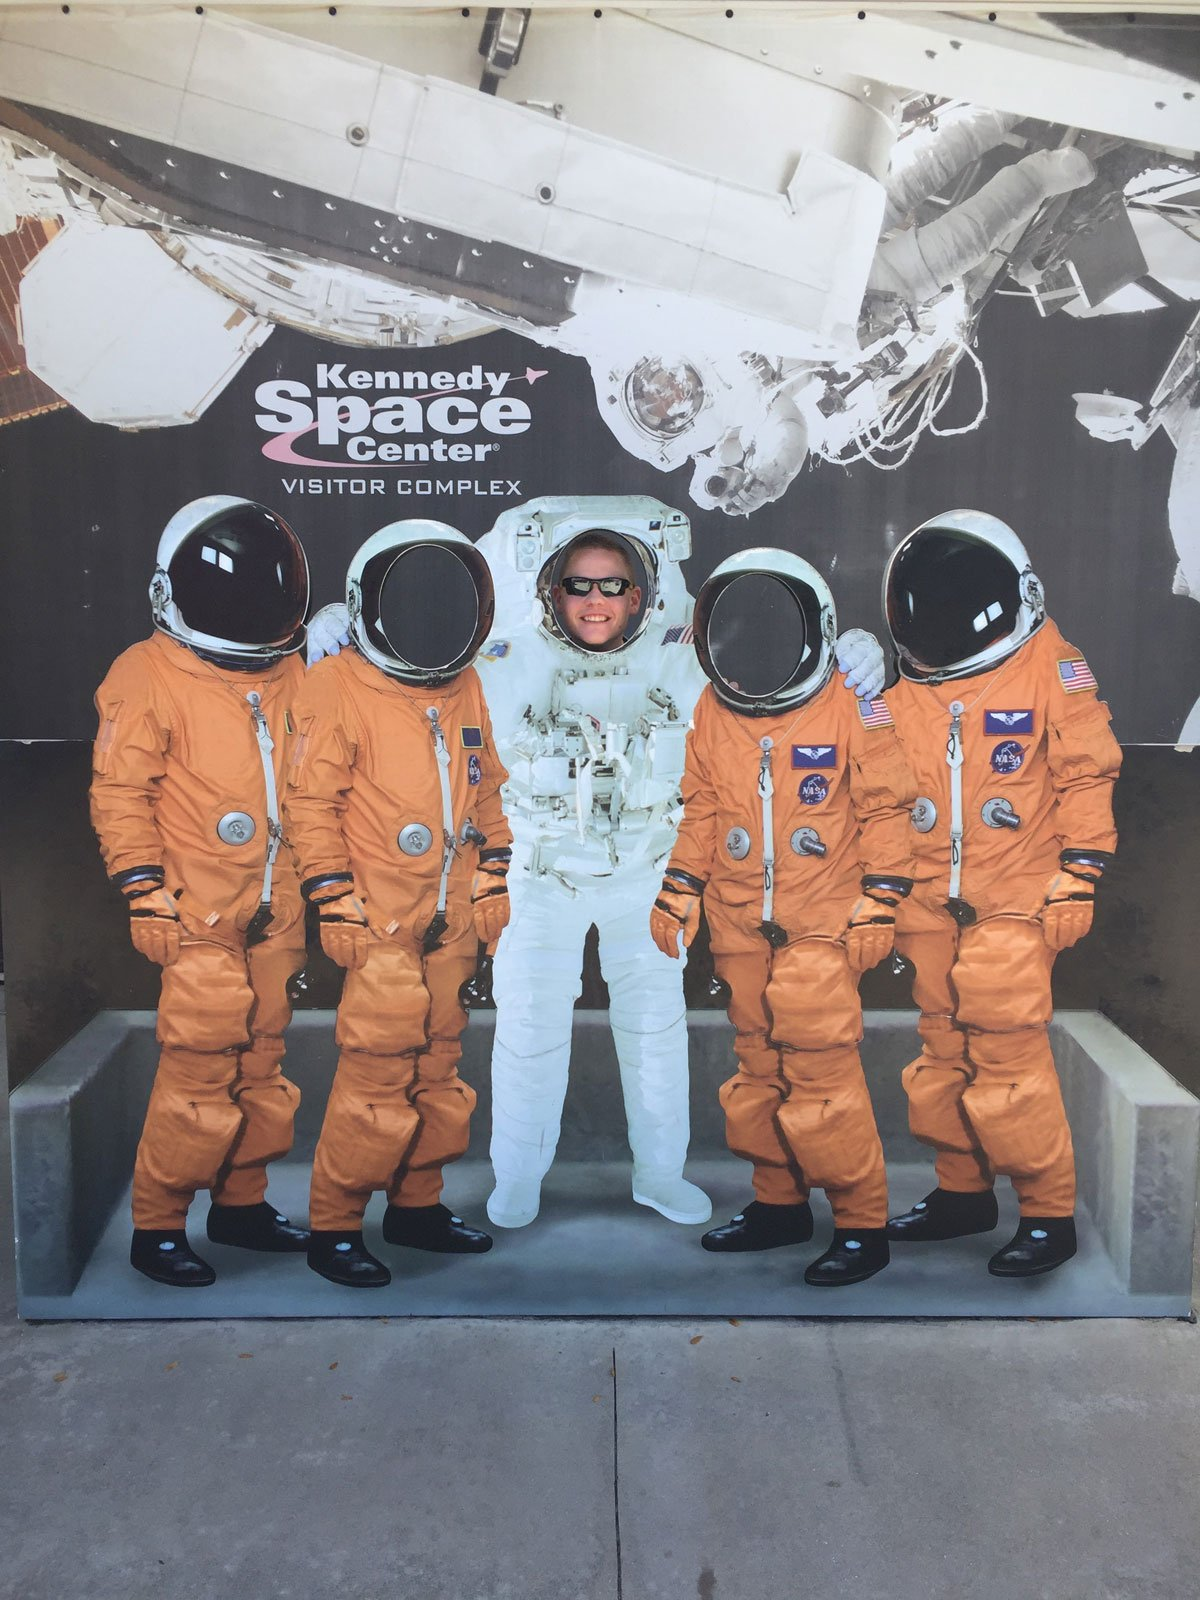 A Day at Kennedy Space Center